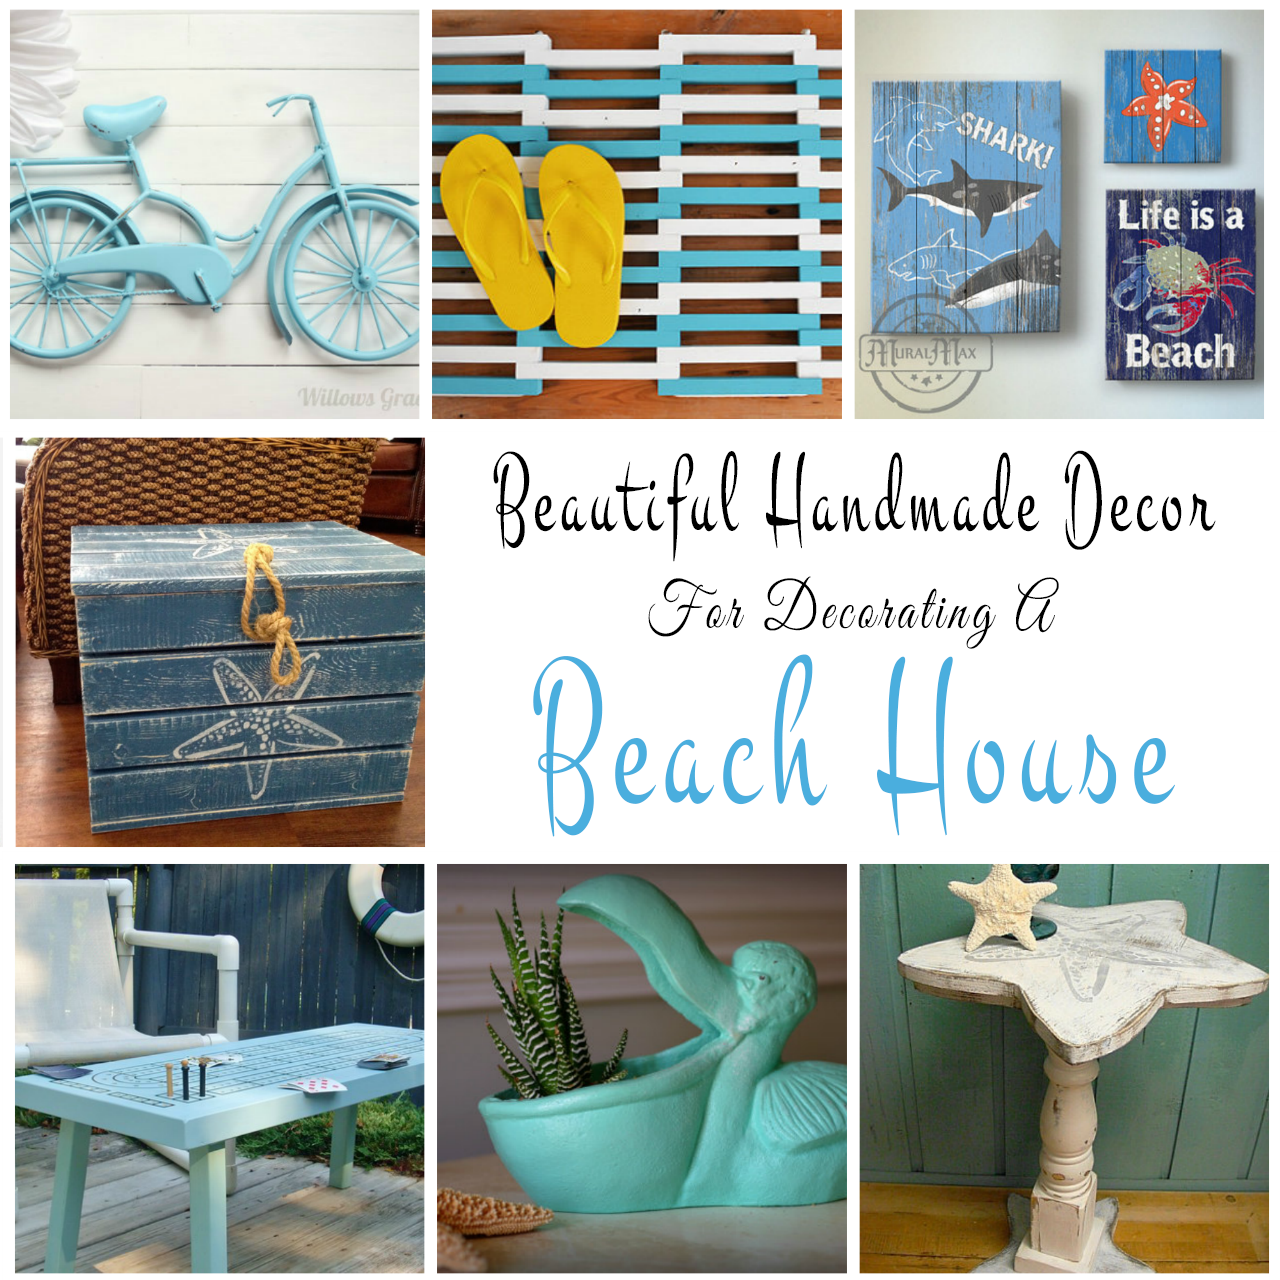 Handmade decor ideas for decorating a beach house for Home design ideas themes